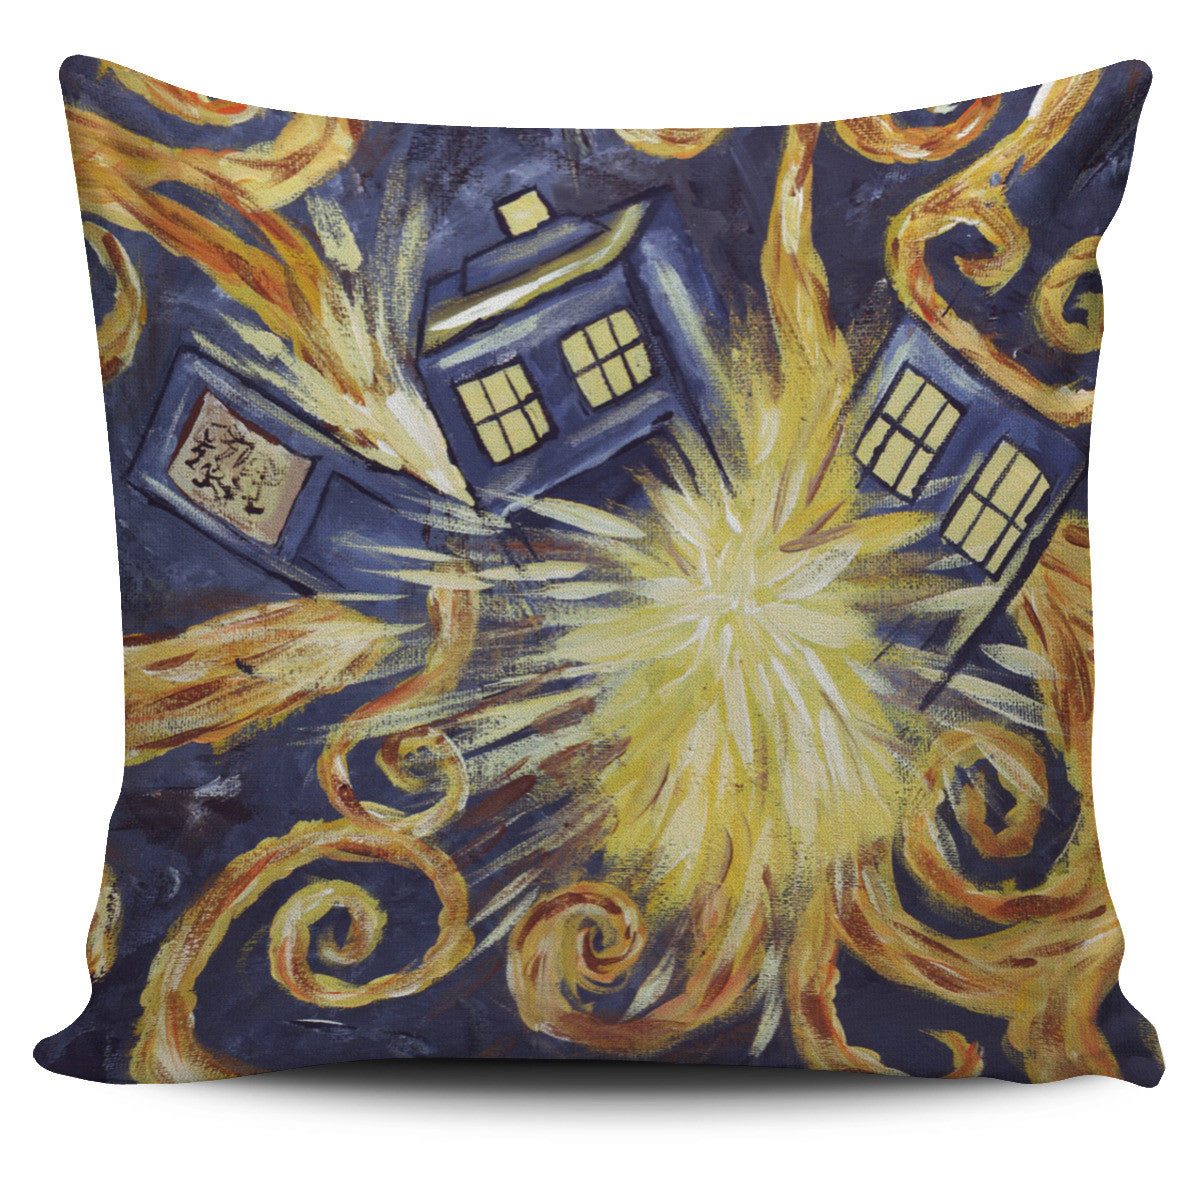 DOCTOR WHO VAN GOGH Pillow Covers